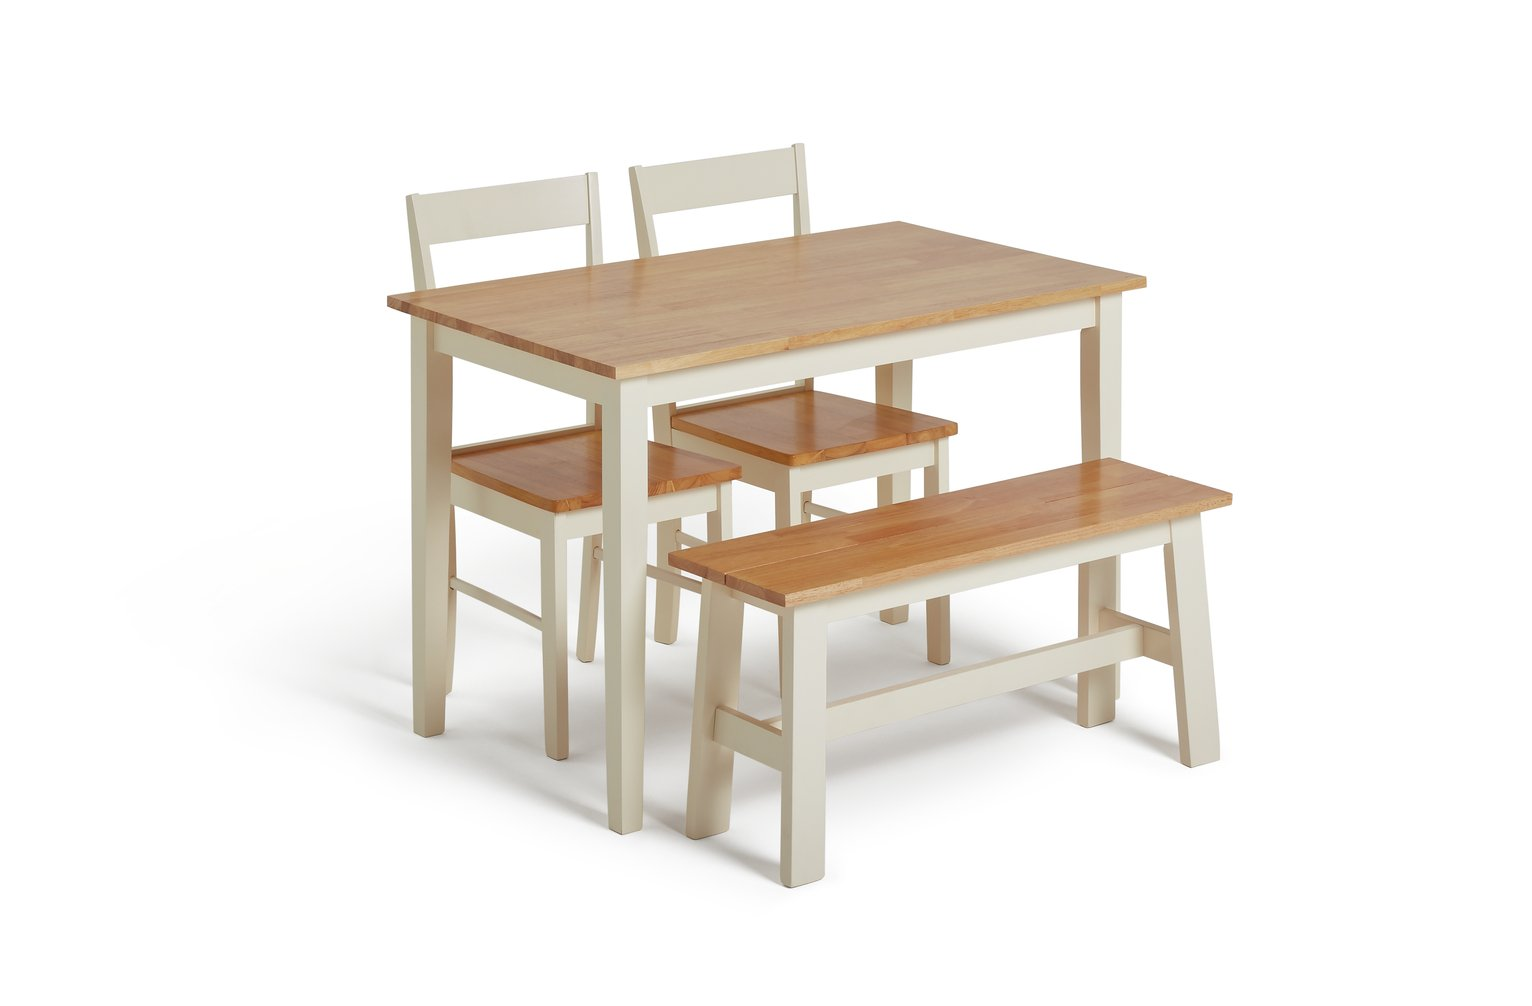 Argos Home Chicago Solid Wood Table, 2 Chairs & Bench